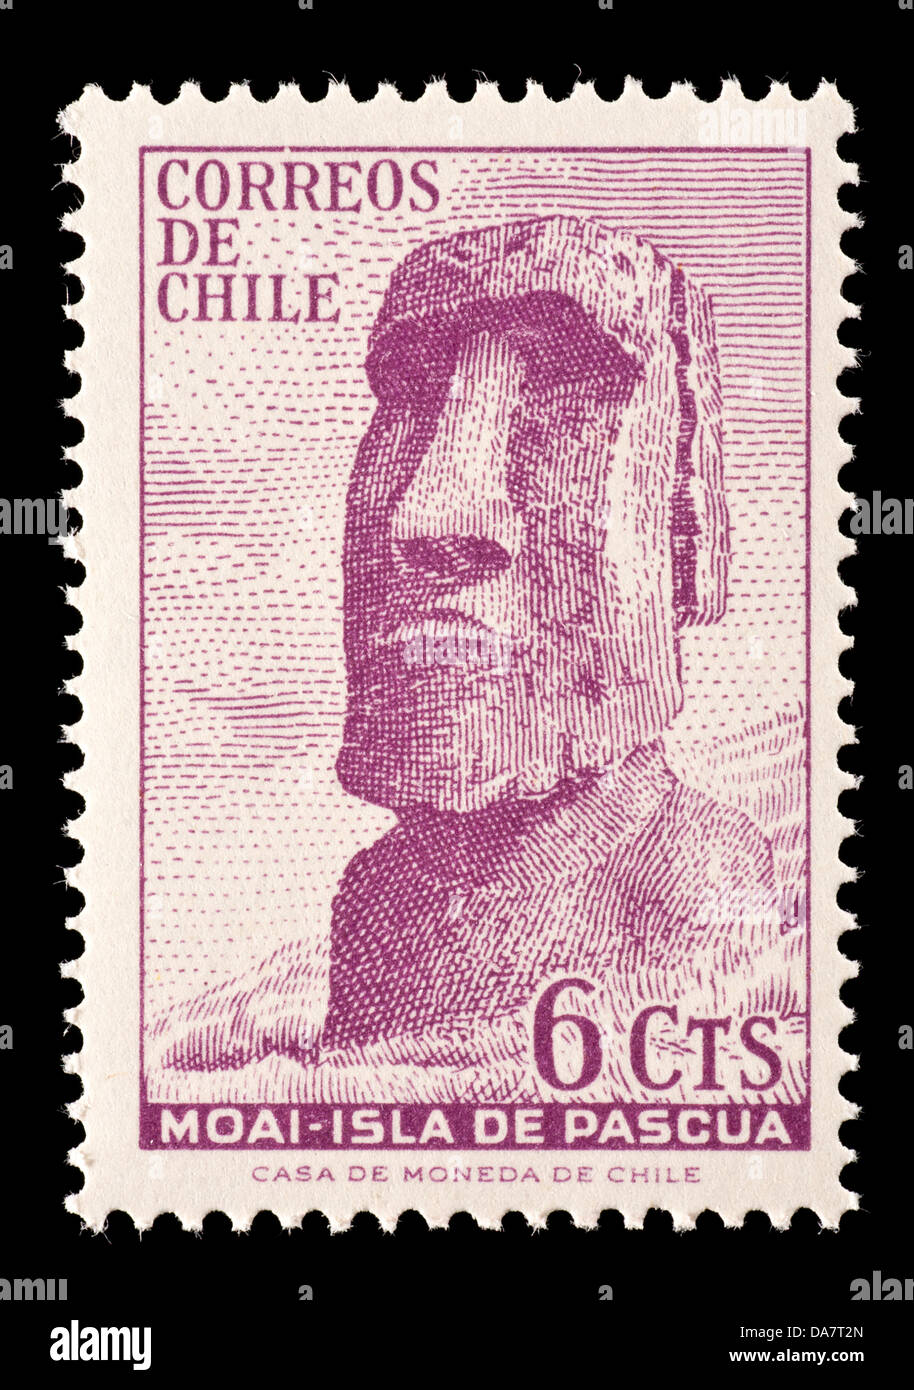 Postage Stamp From Chile Depicting Moai On Easter Island